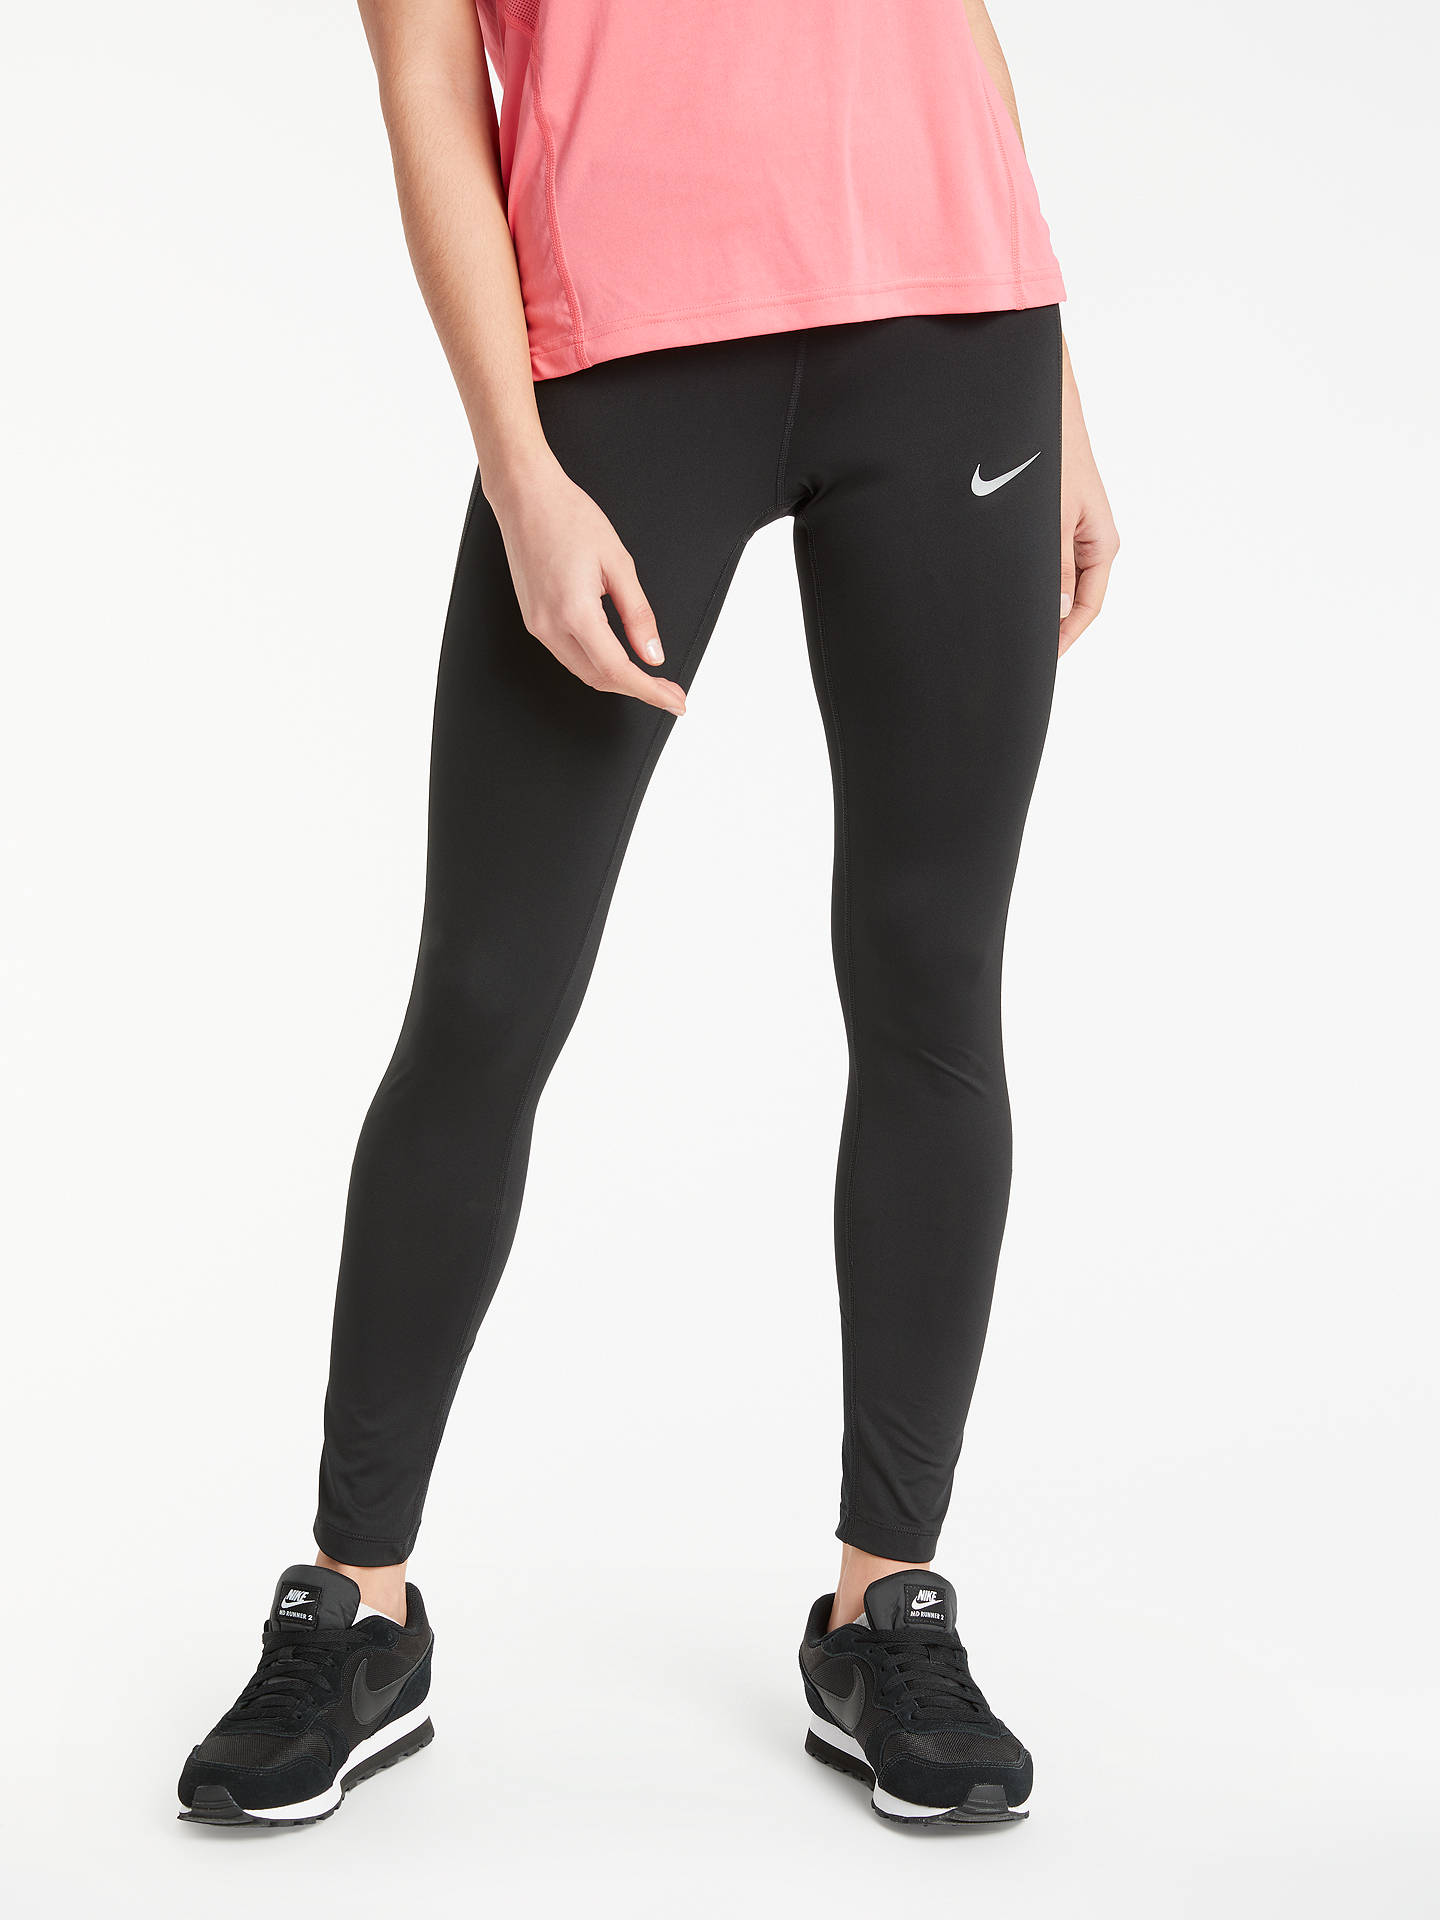 Nike Running Tights, Black at John Lewis & Partners